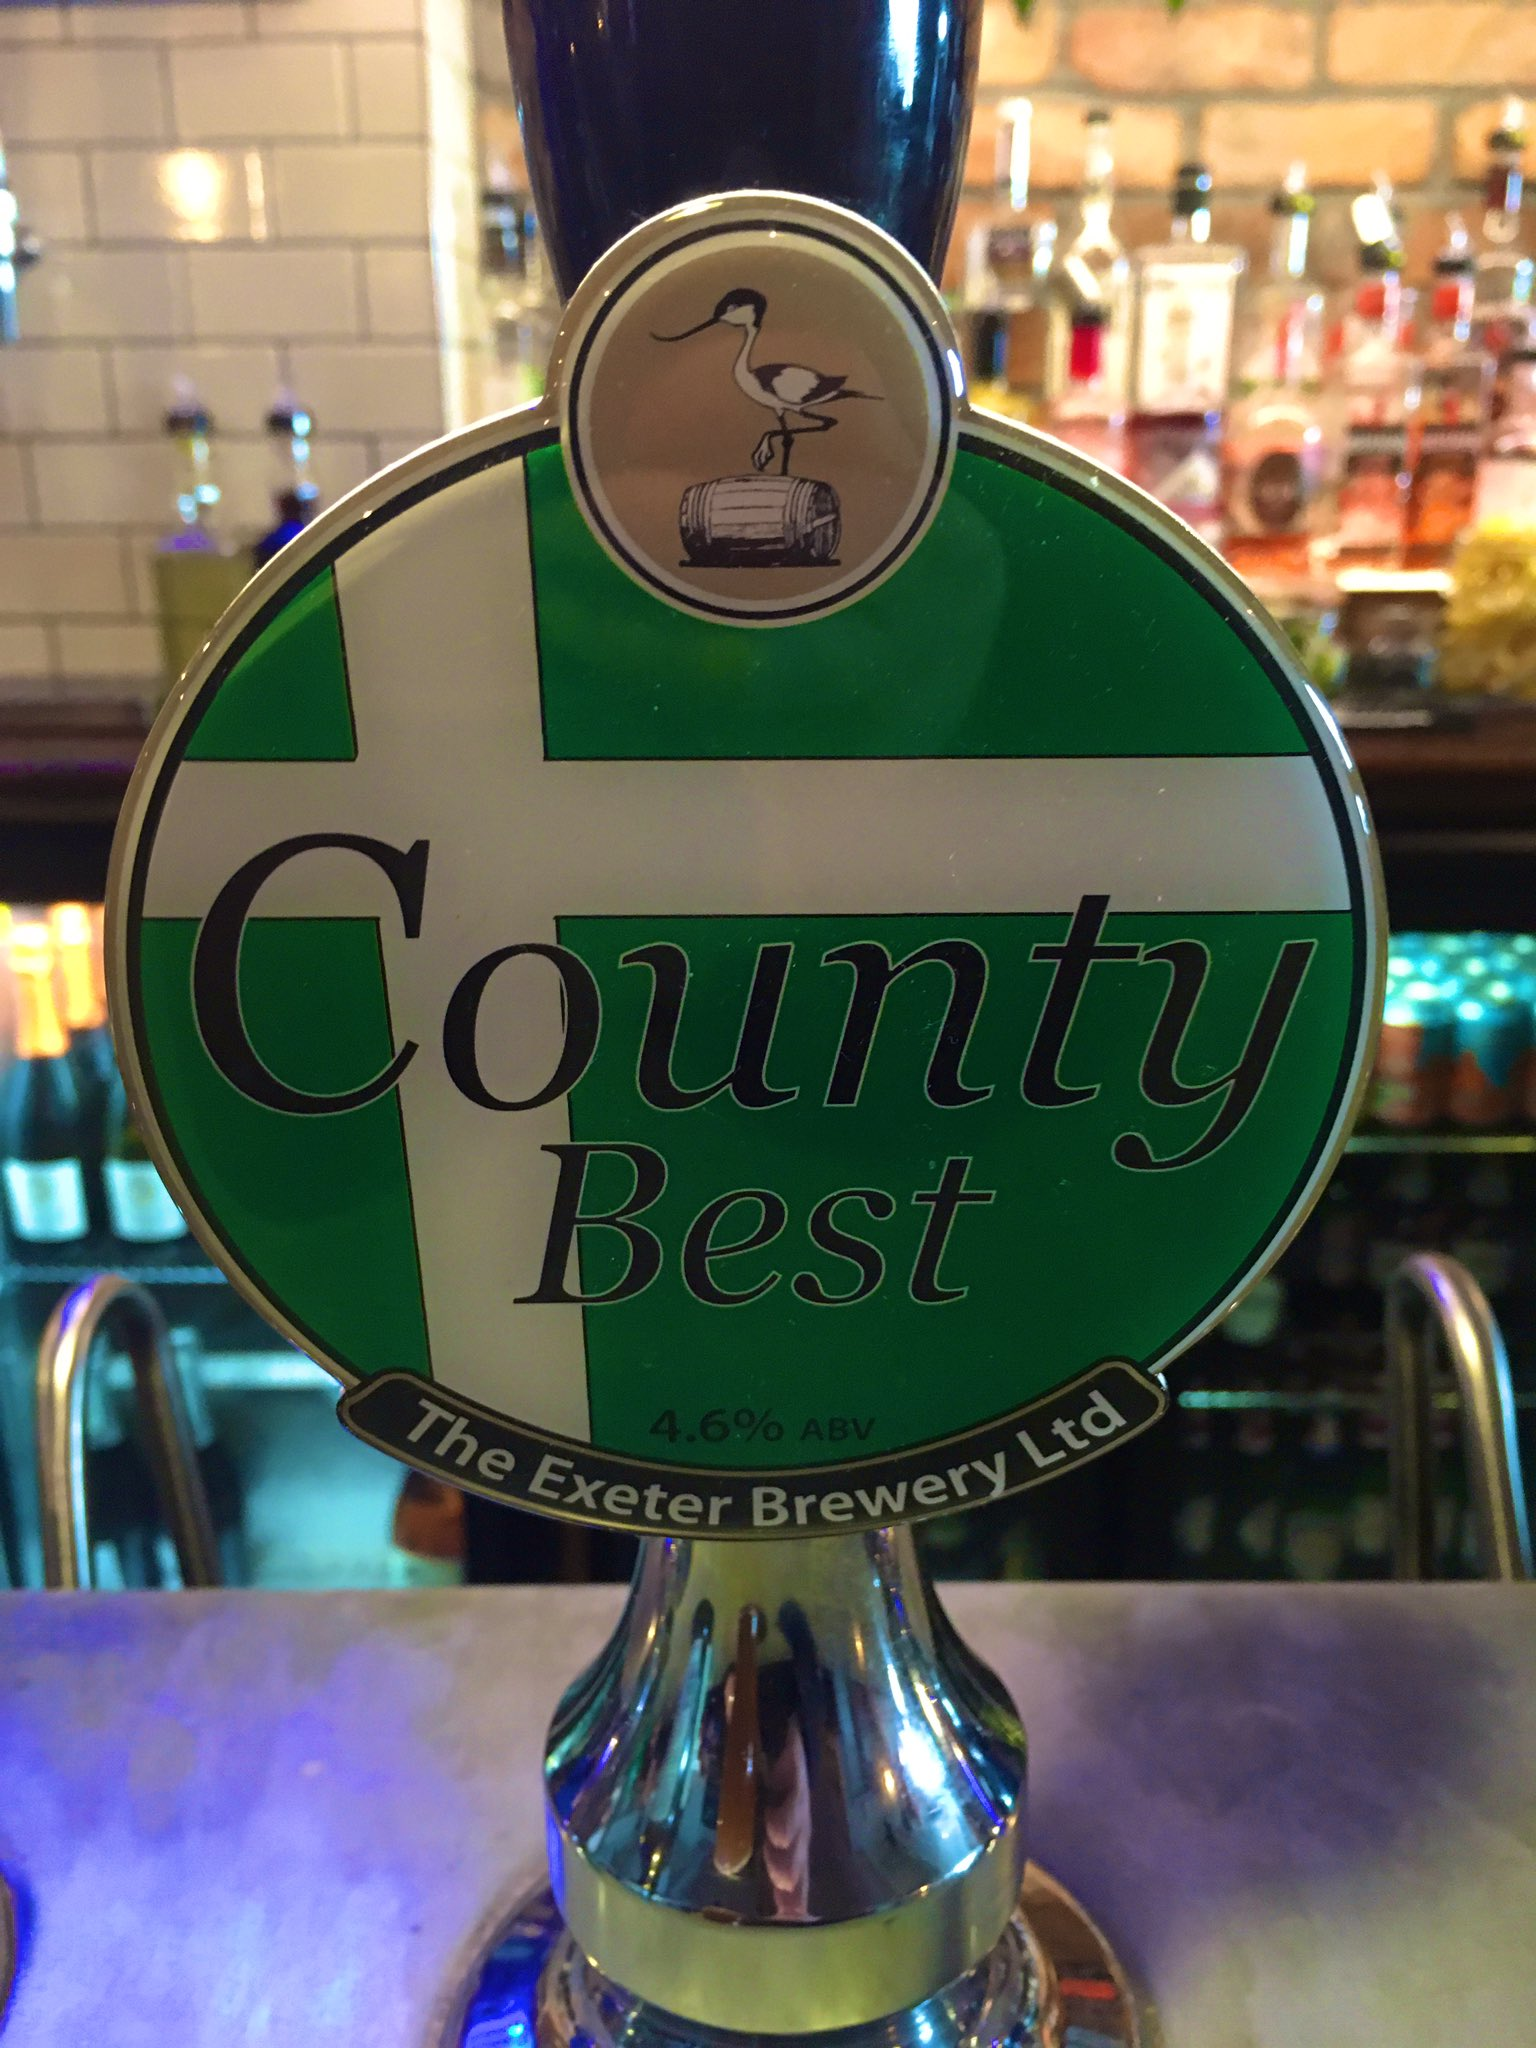 163: County Best